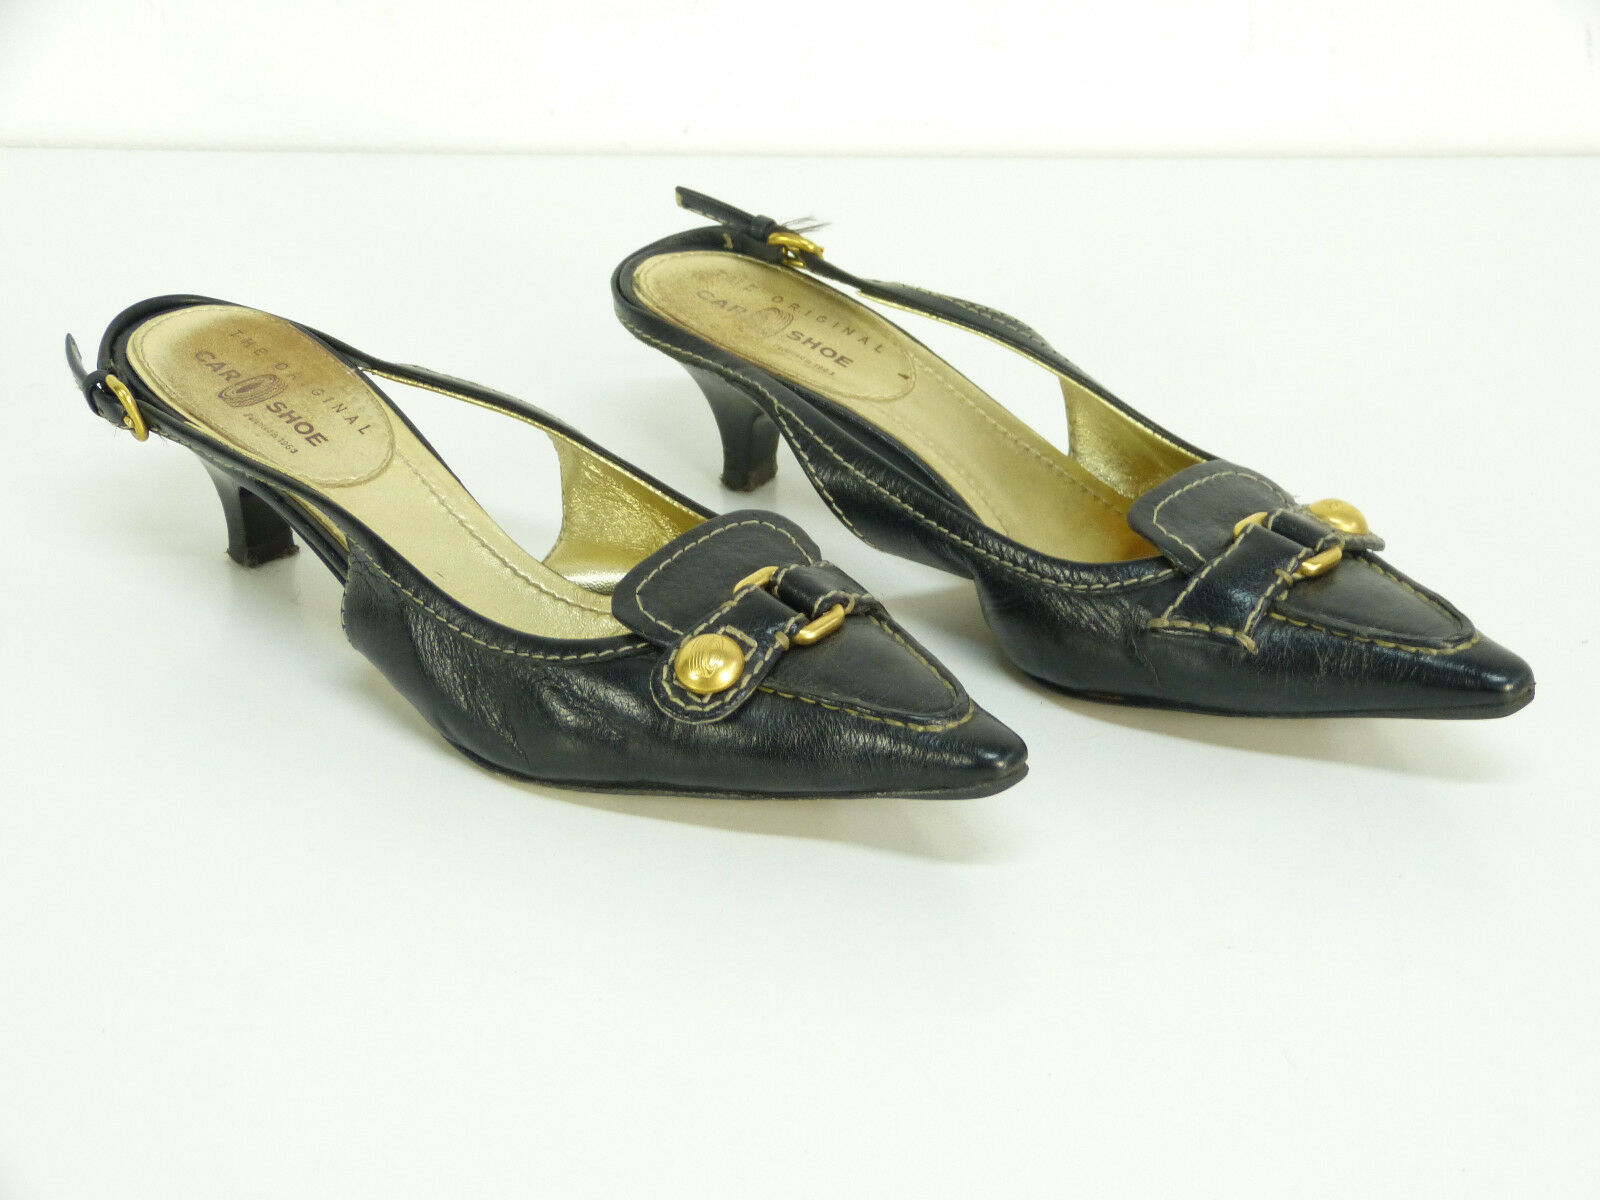 CAR 38,5 SHOE LEDER PUMPS GR 38,5 CAR / SCHWARZ - LUXUS PUR - EDEL     ( L 5824 ) 966047